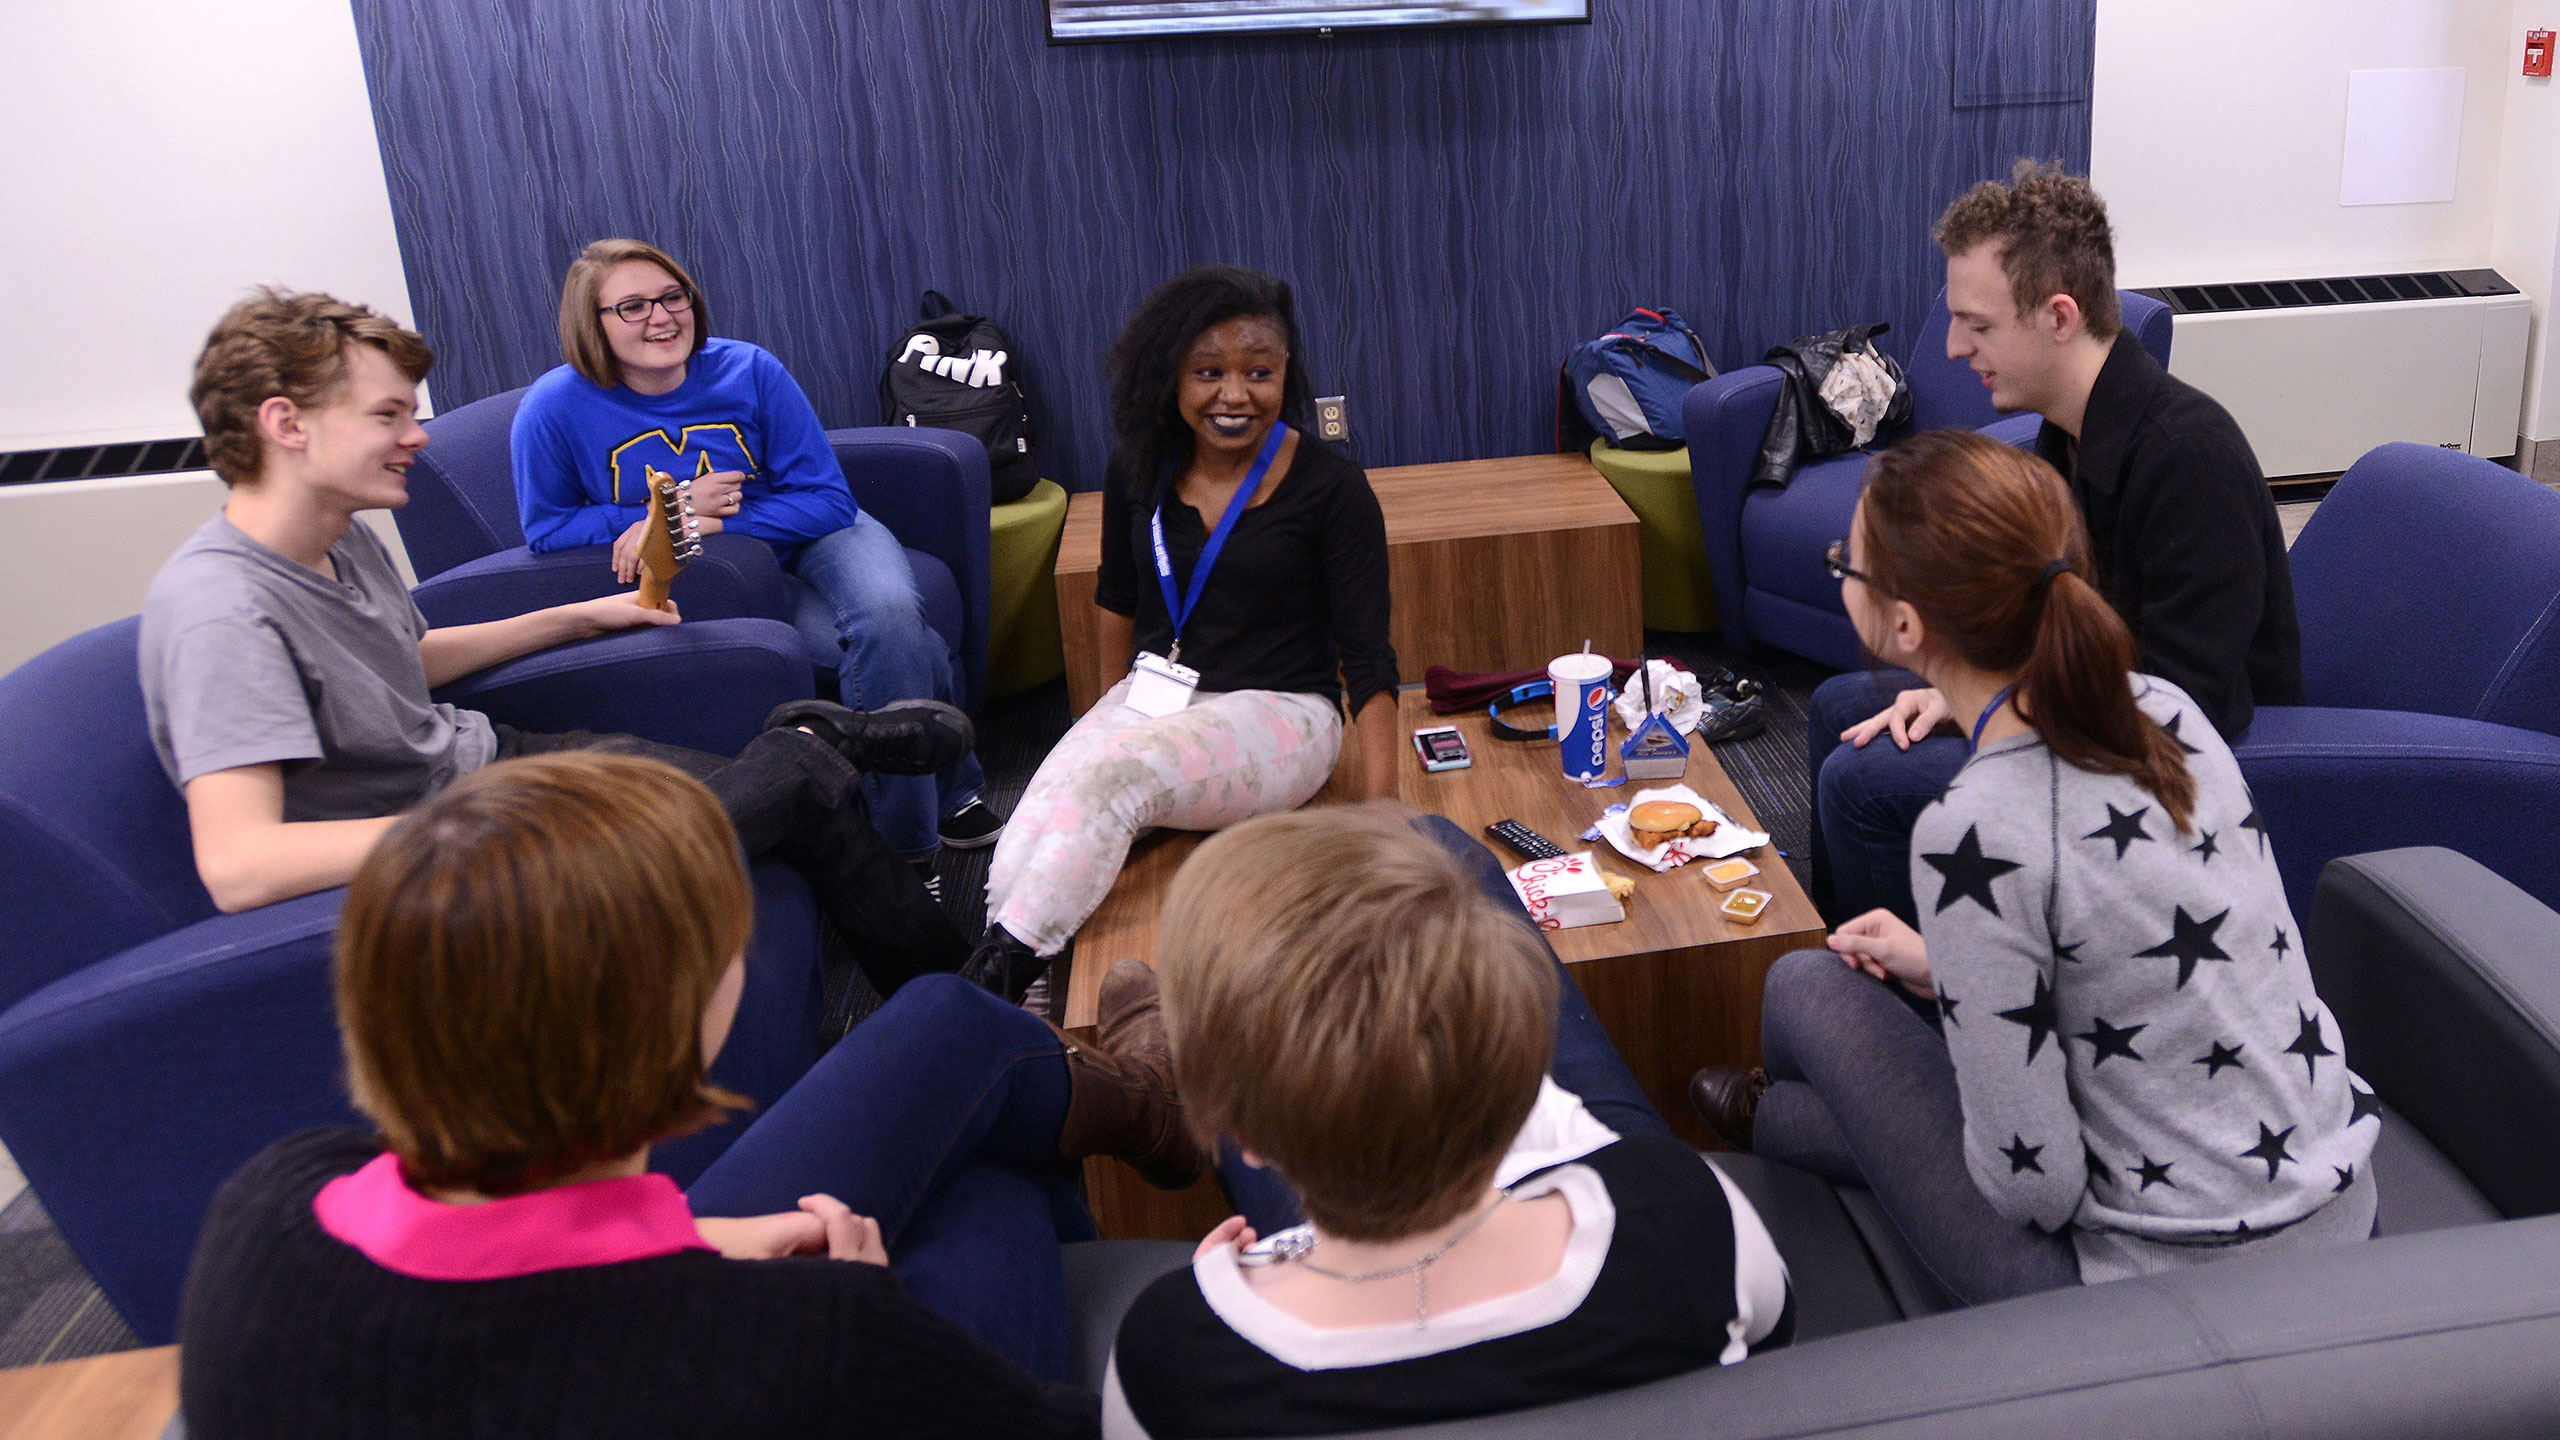 photo: Students in lounge area